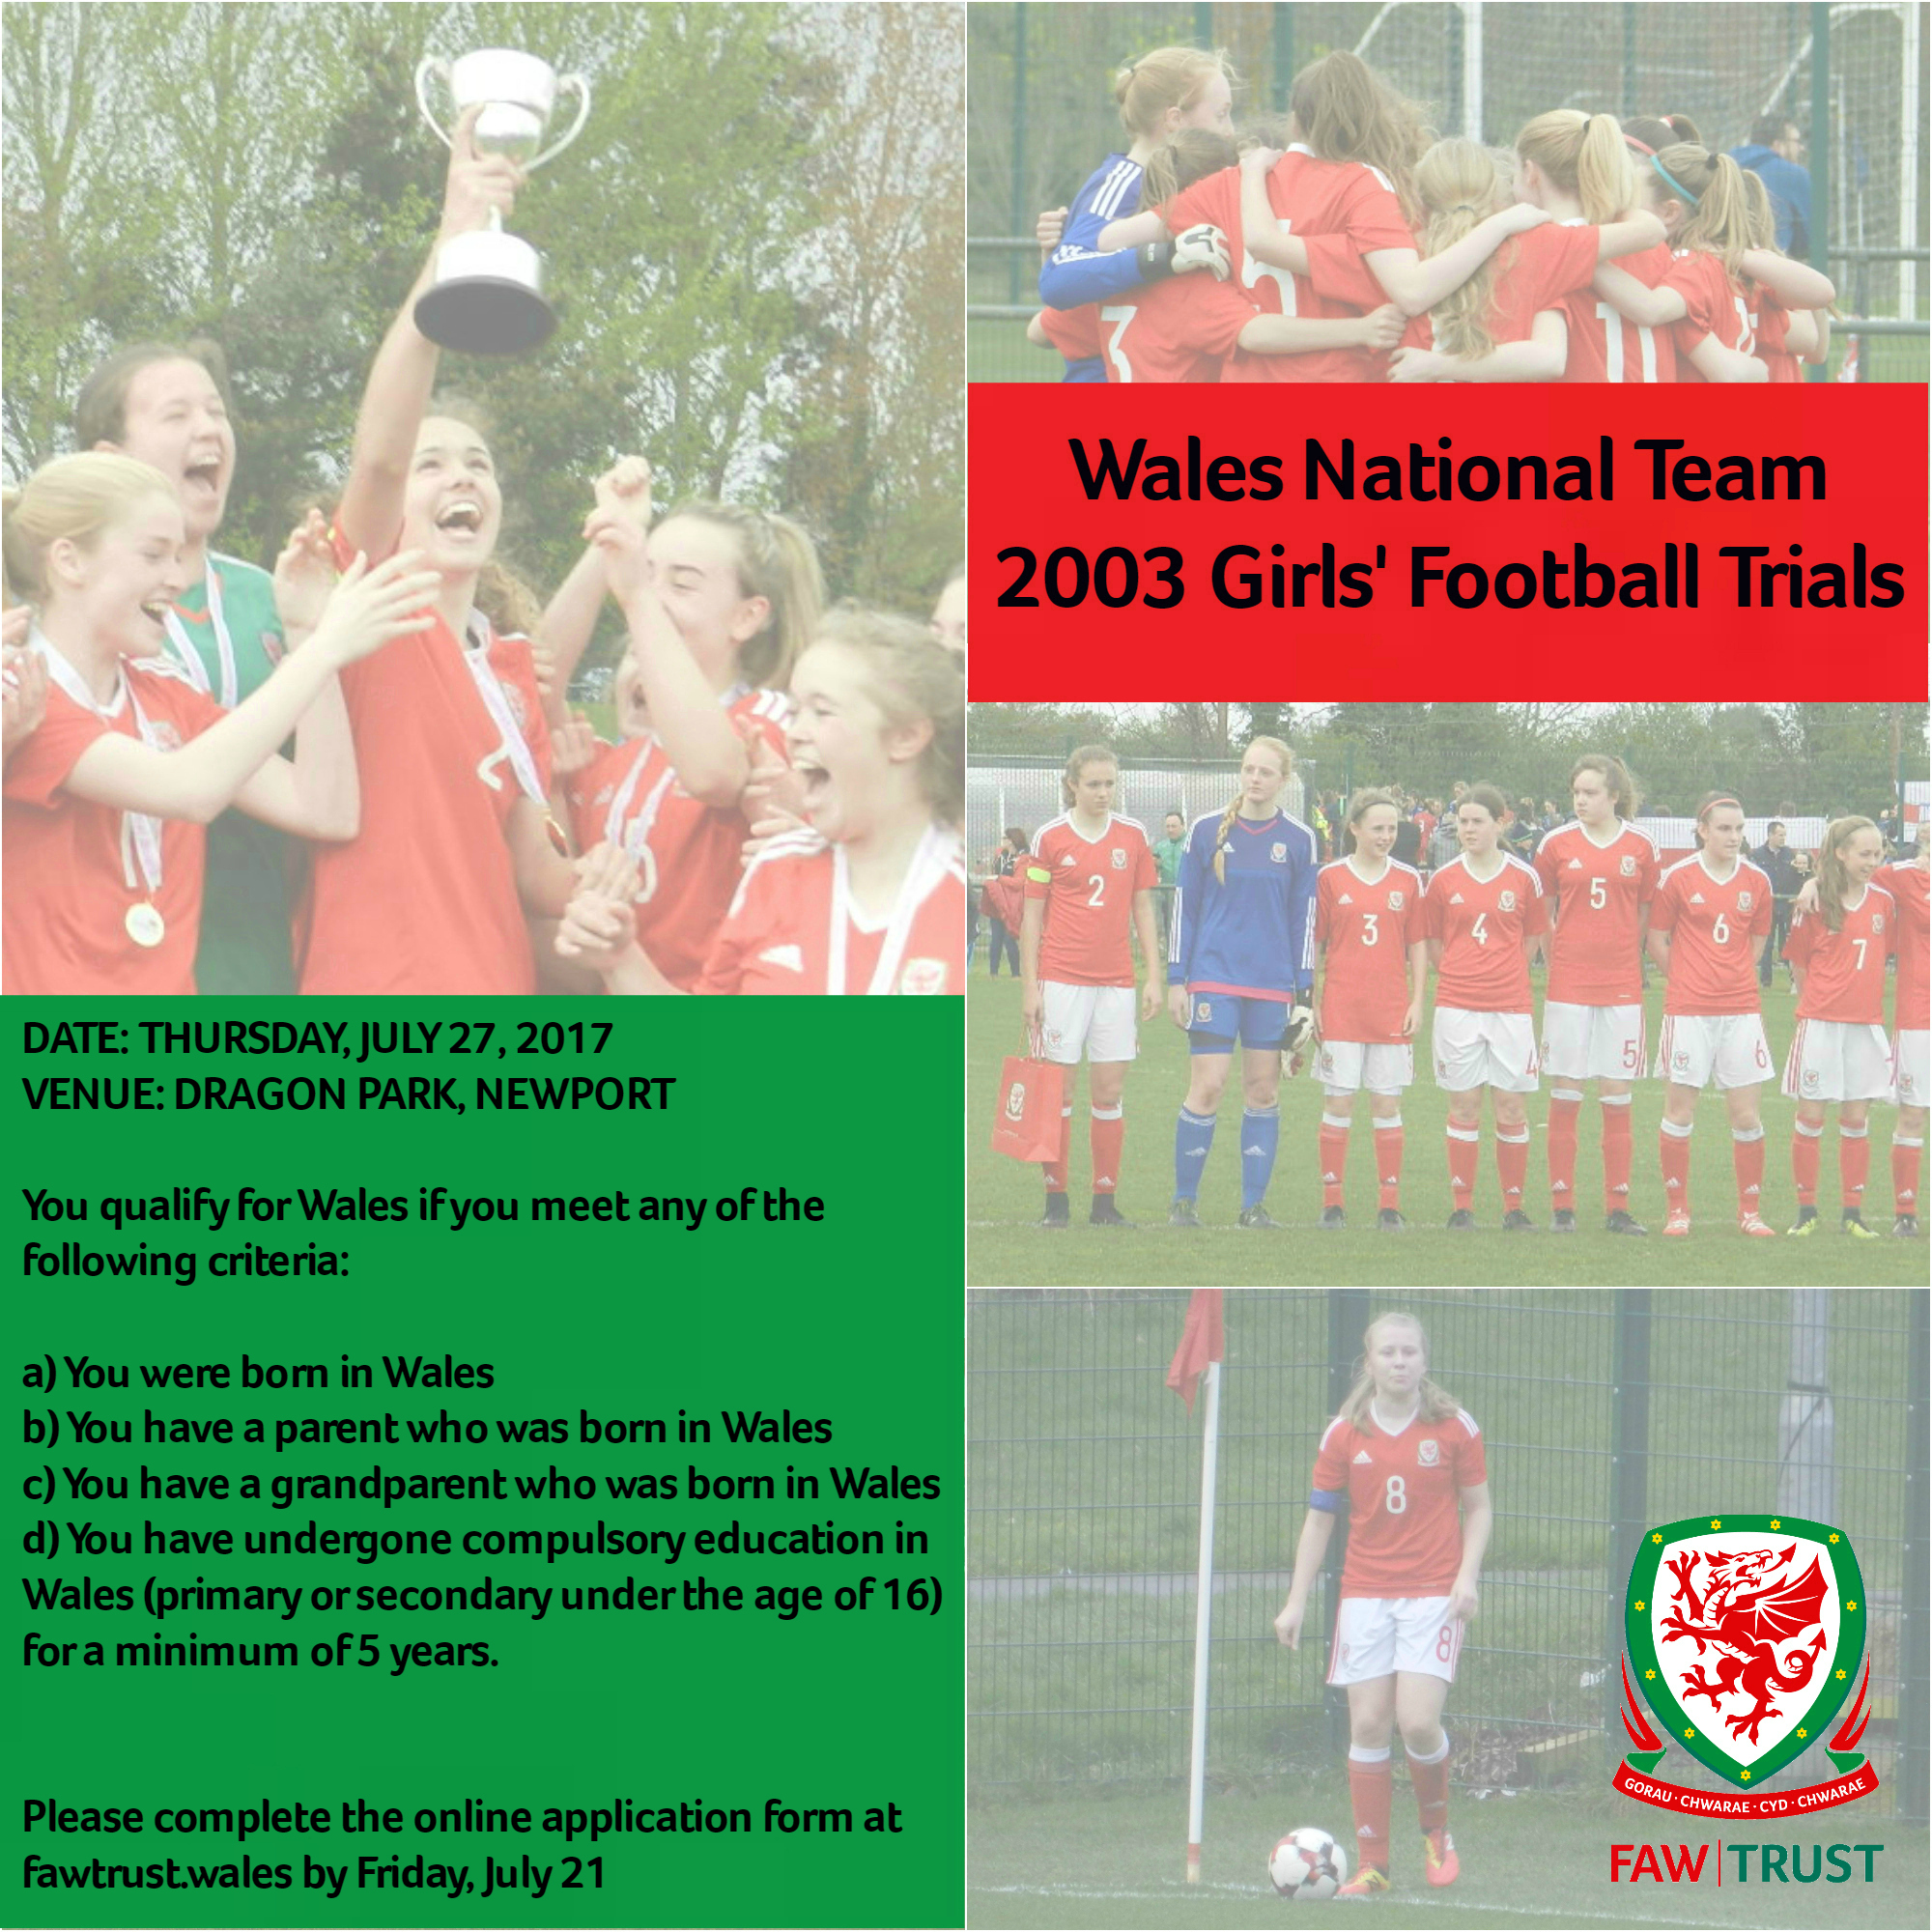 Sign up here for the Wales National Team 2003 Girls' Football Trials